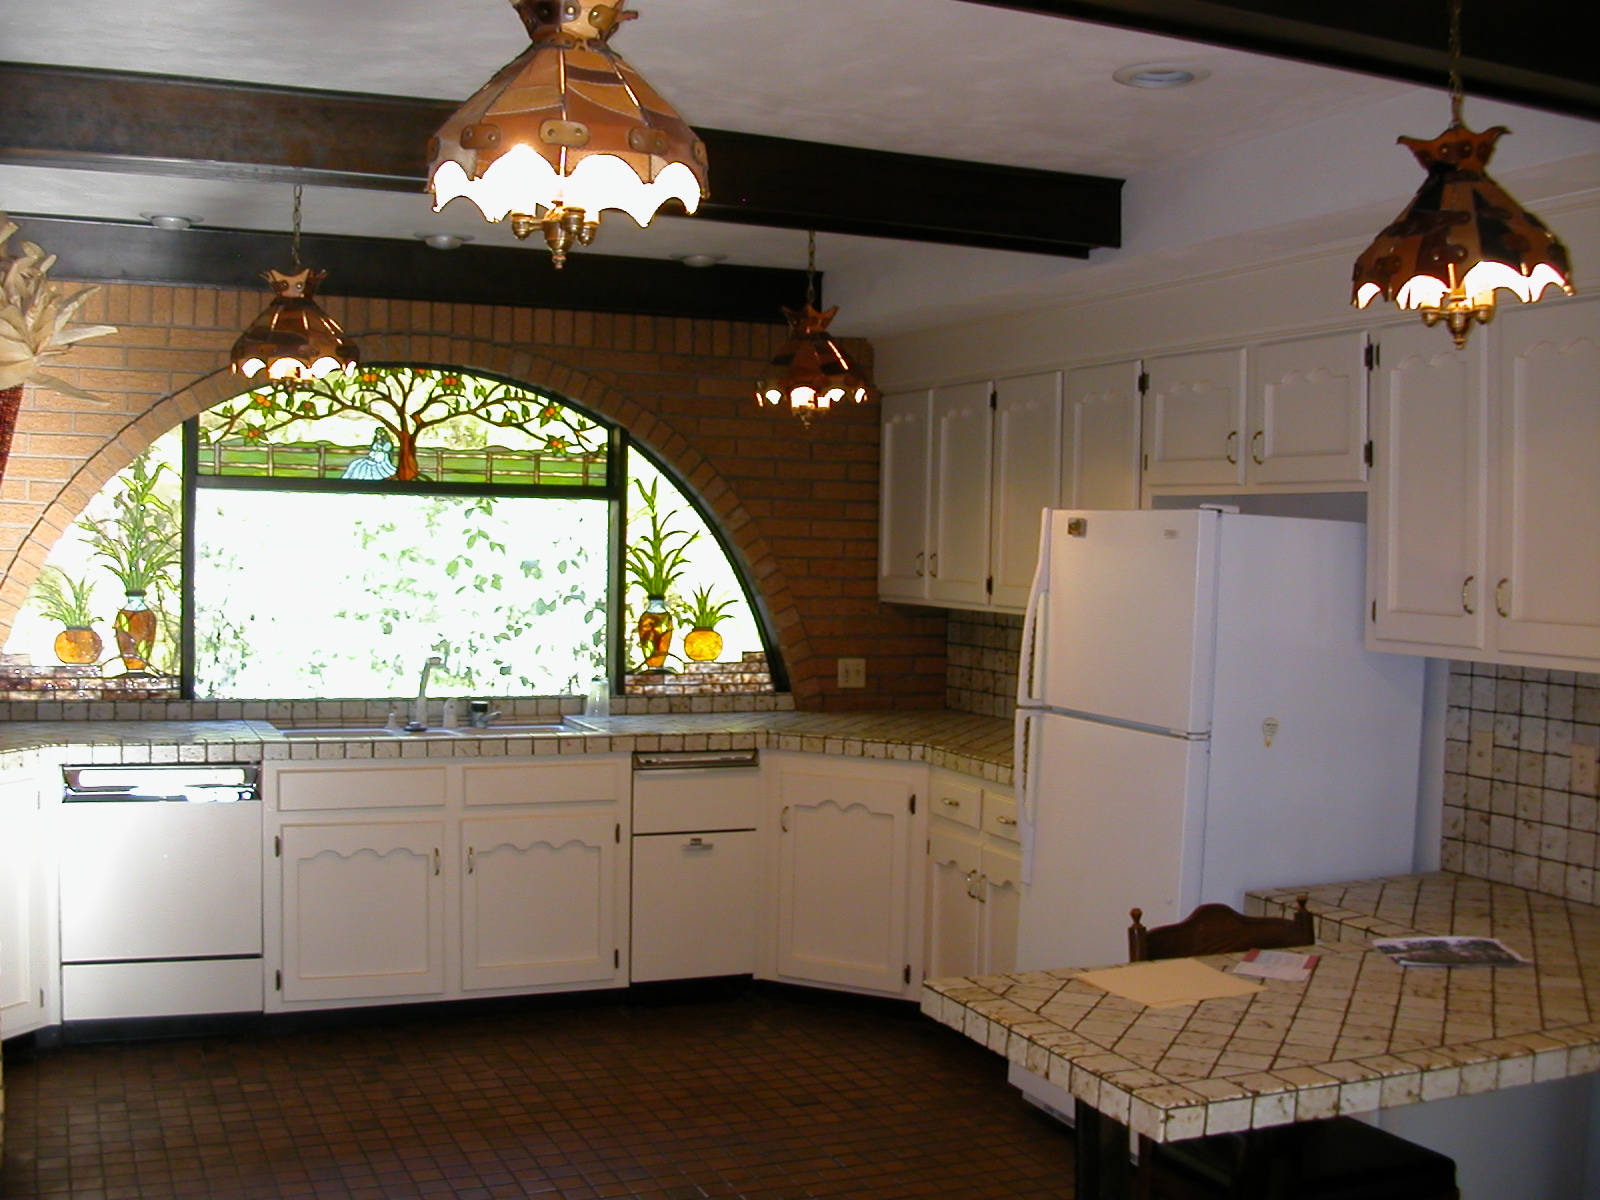 Advantages and disadvantages of stained glass windows for for Stained glass kitchen windows